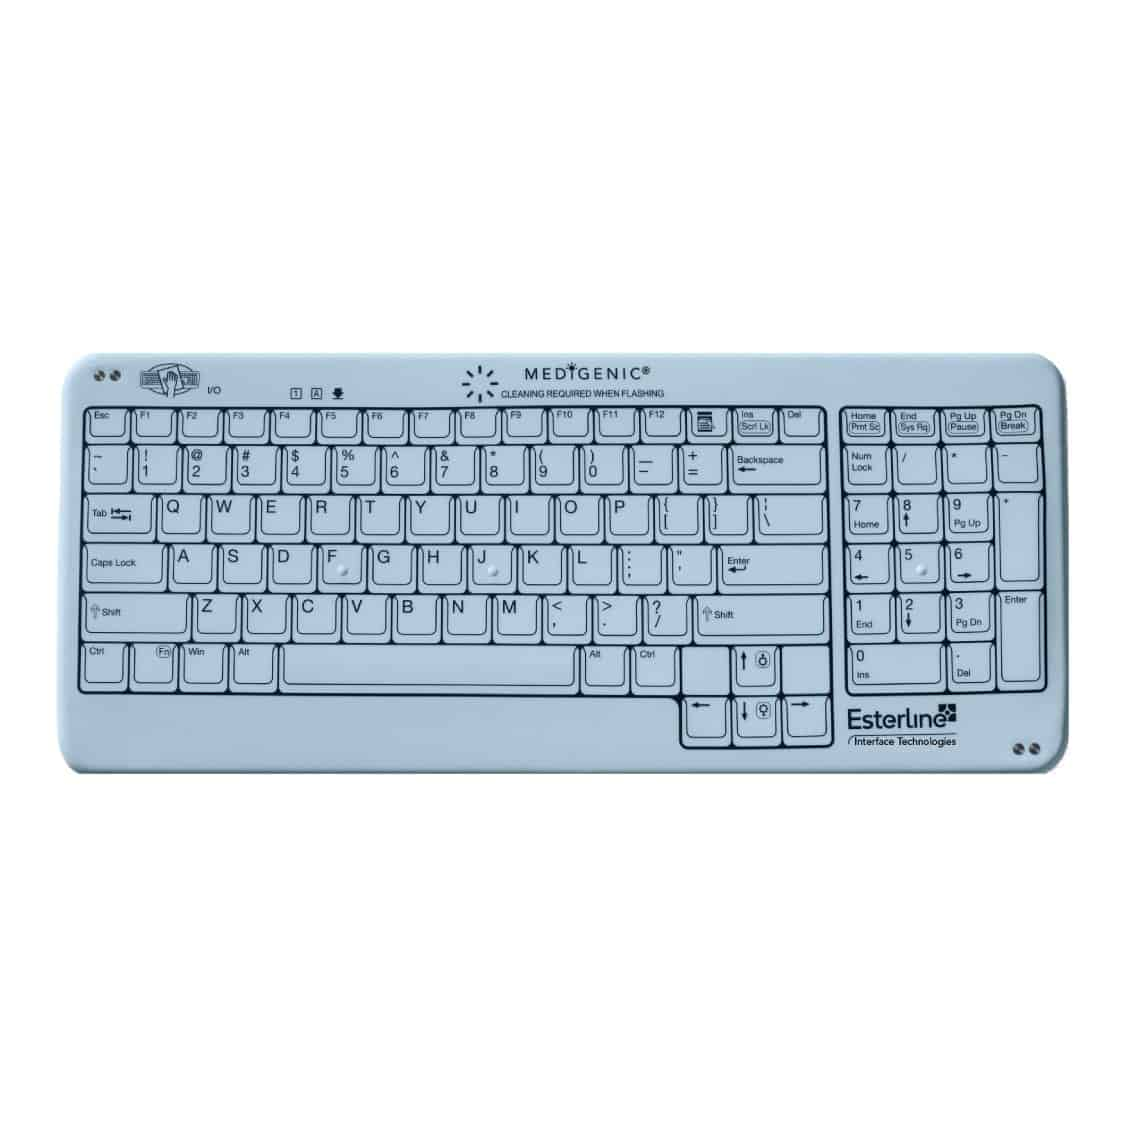 Medigenic Compliance 102 Keyboard